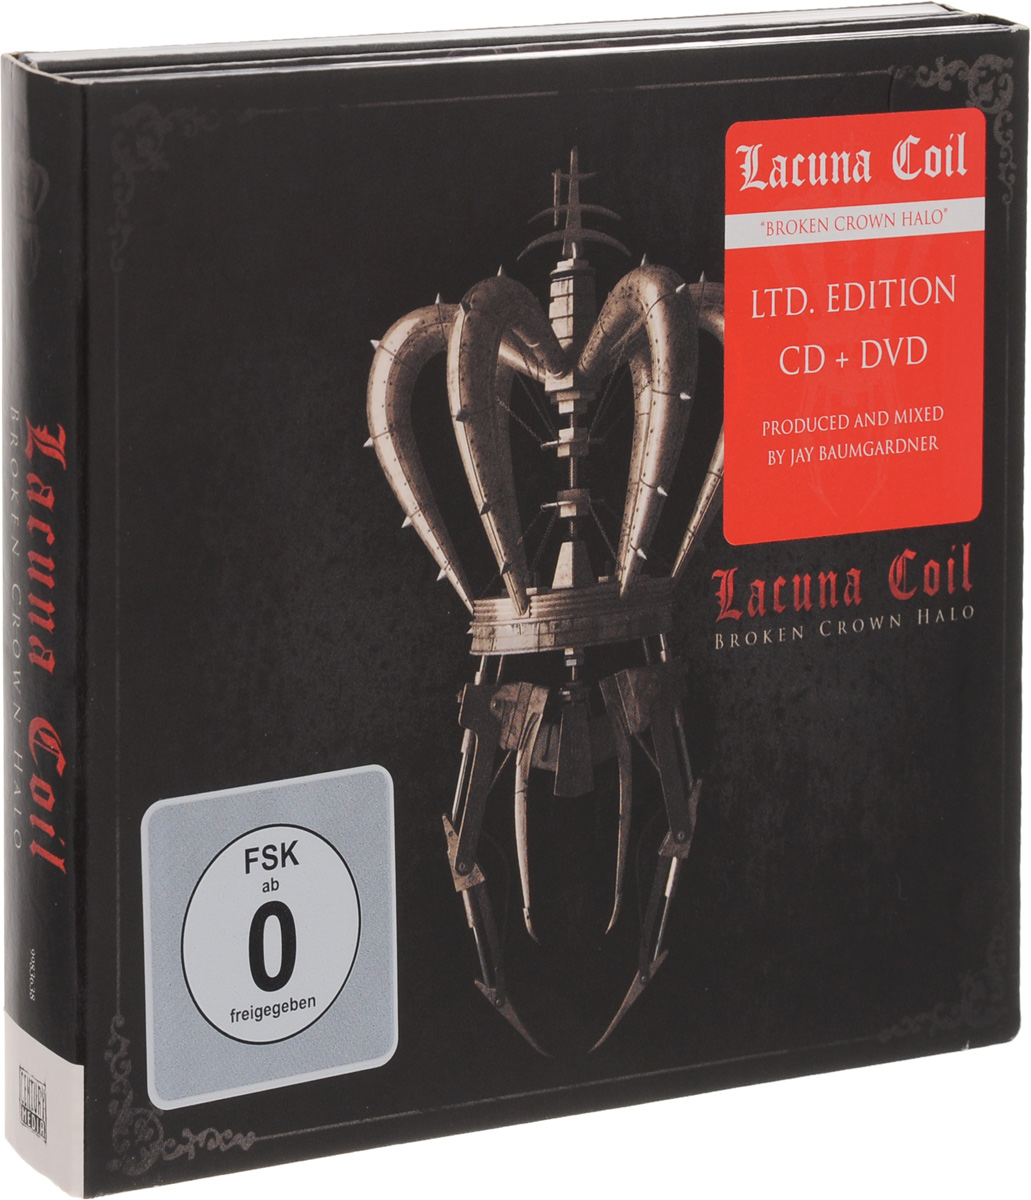 Lacuna Coil Lacuna Coil. Broken Crown Halo (CD + DVD) svart crown svart crown abreaction lp cd